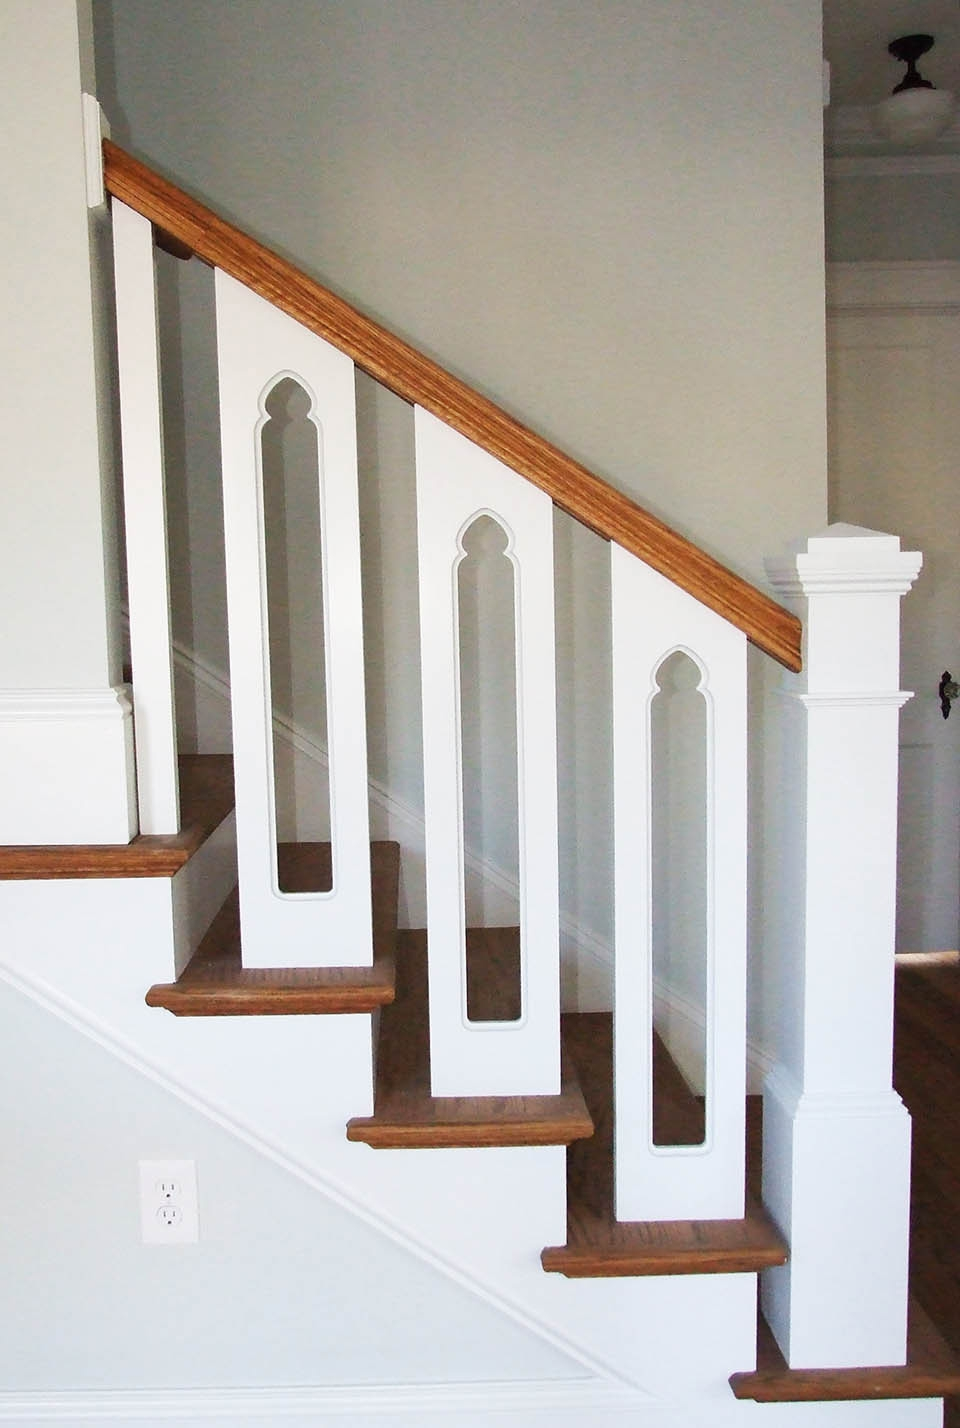 Wooden Baluster System Southern Staircase Artistic Stairs | Wooden Stair Rails And Balusters | Stair Parts | Wrought Iron Balusters | Stair Spindles | Newel Posts | Stair Treads